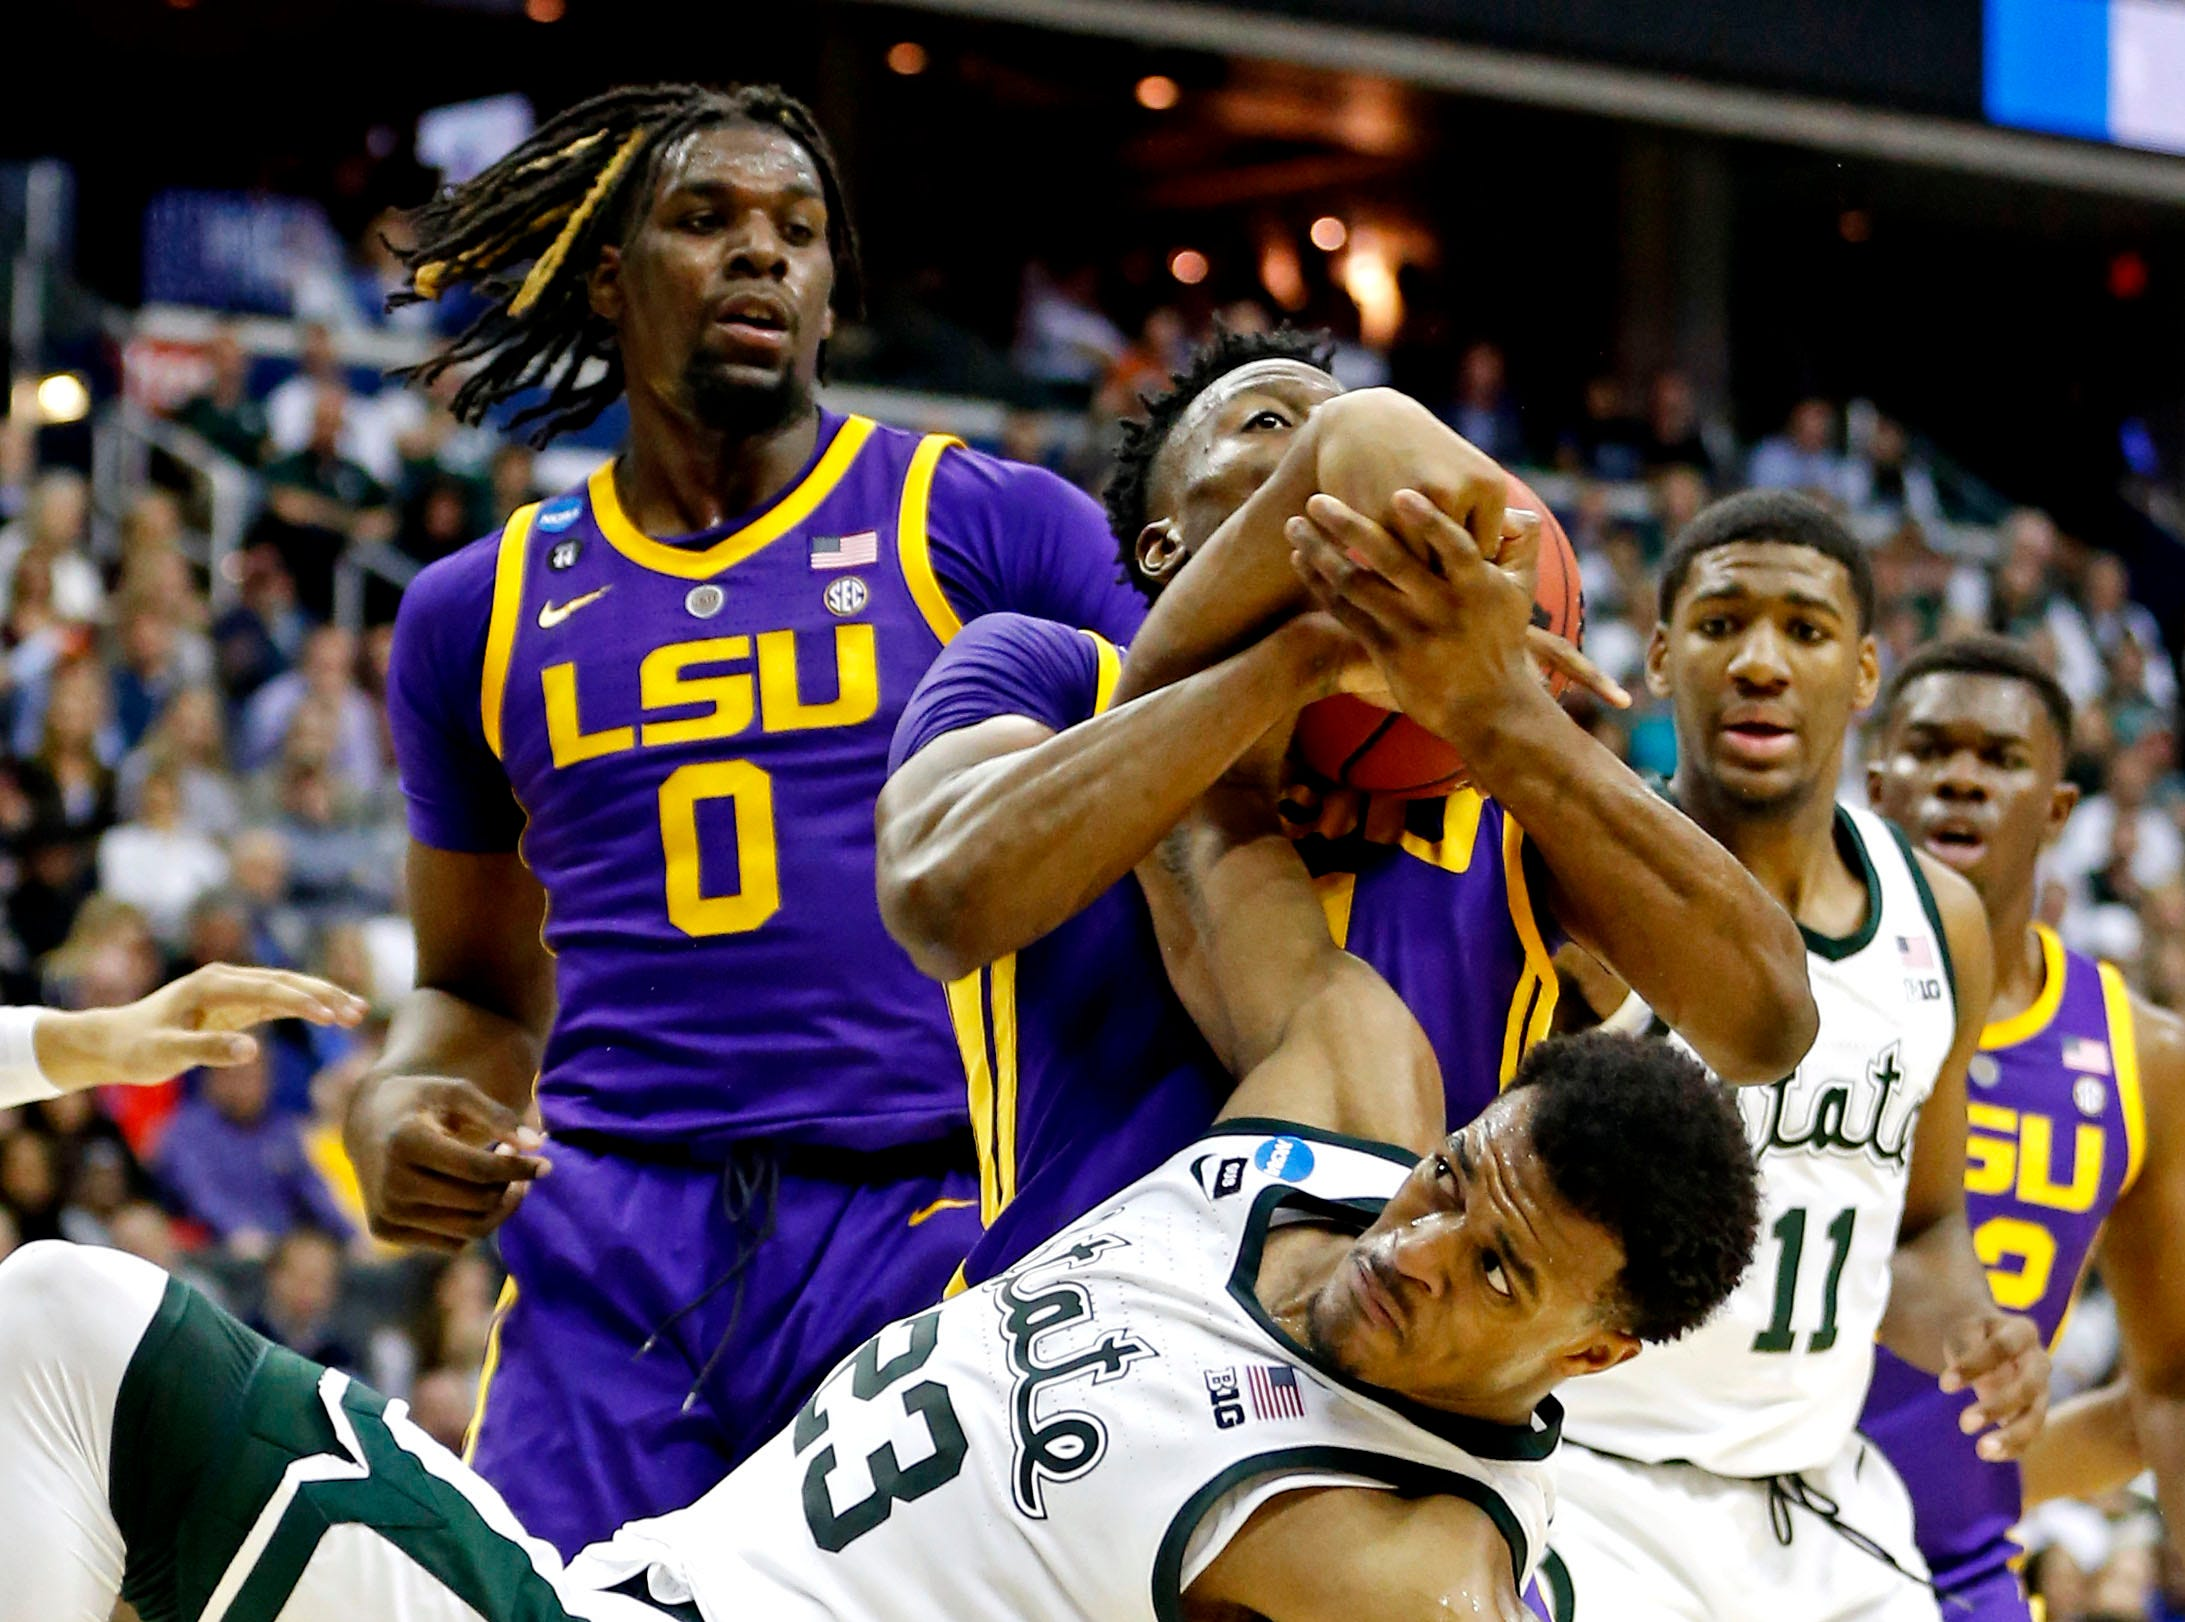 Mar 29, 2019; Washington, DC, USA; Michigan State Spartans forward Xavier Tillman (23) and LSU Tigers forward Kavell Bigby-Williams (11) go for a rebound during the second half in the semifinals of the east regional of the 2019 NCAA Tournament at Capital One Arena. Mandatory Credit: Amber Searls-USA TODAY Sports